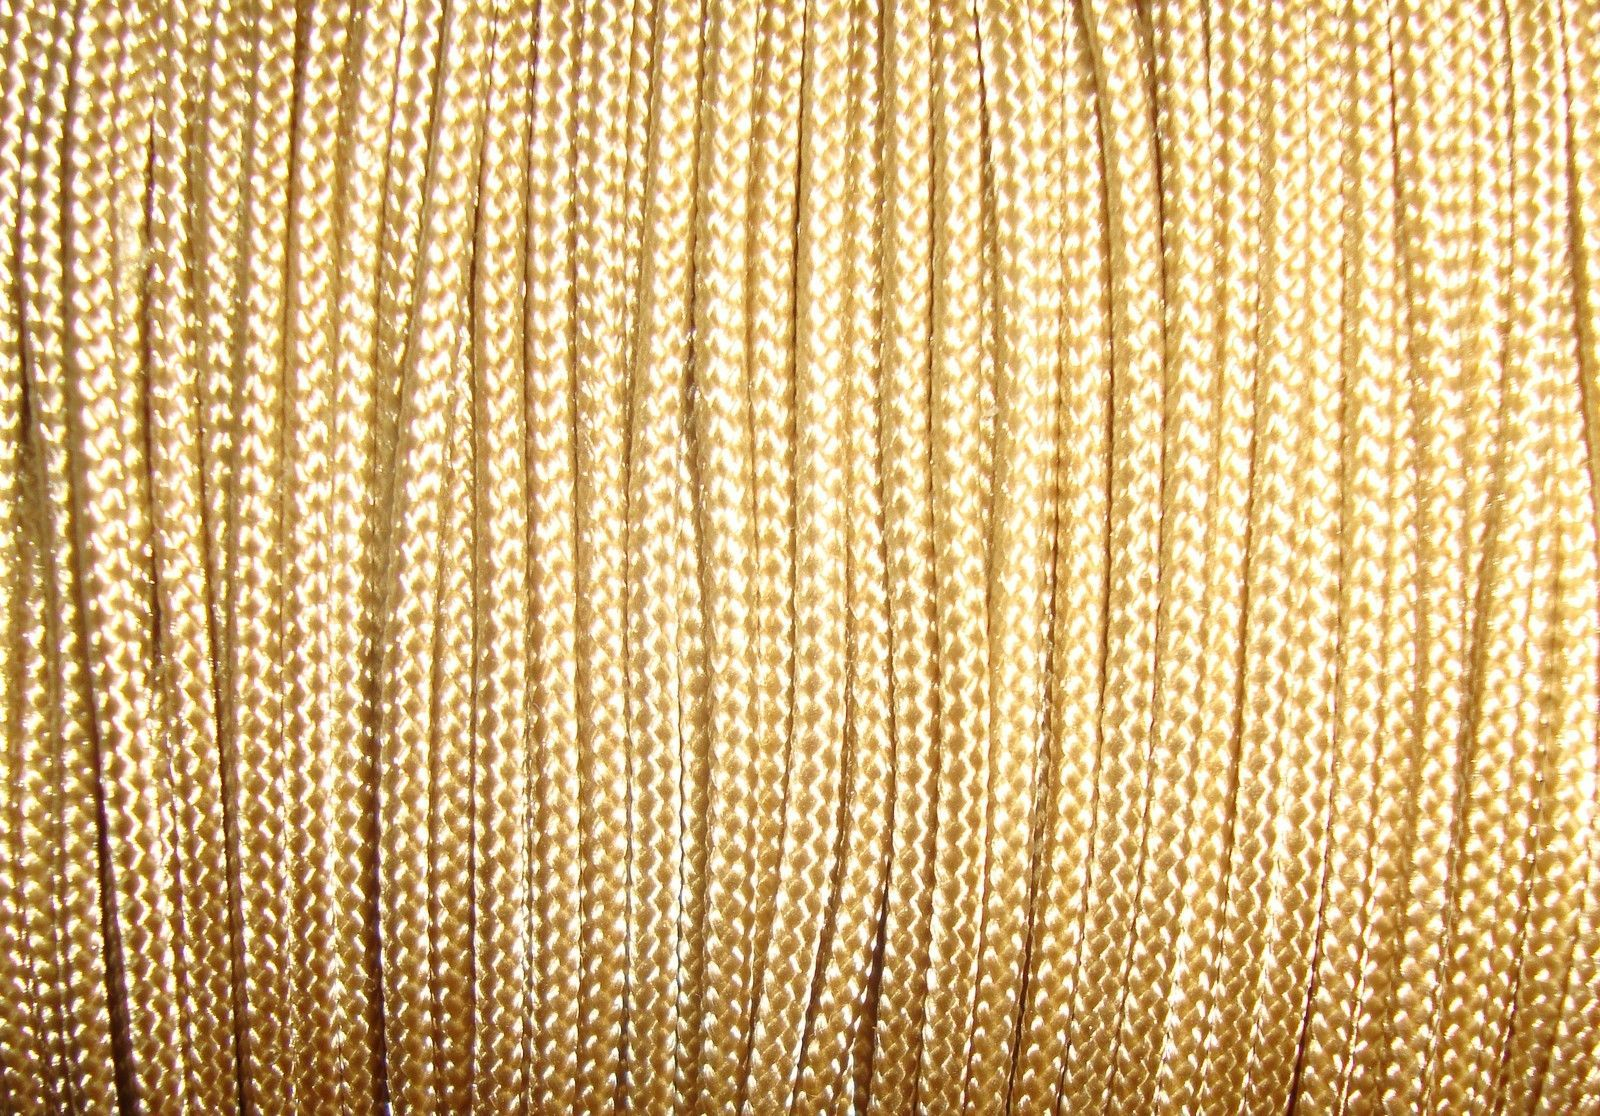 40 FEET:1.8mm CAMEL LIFT CORD for Blinds, Roman Shades and More